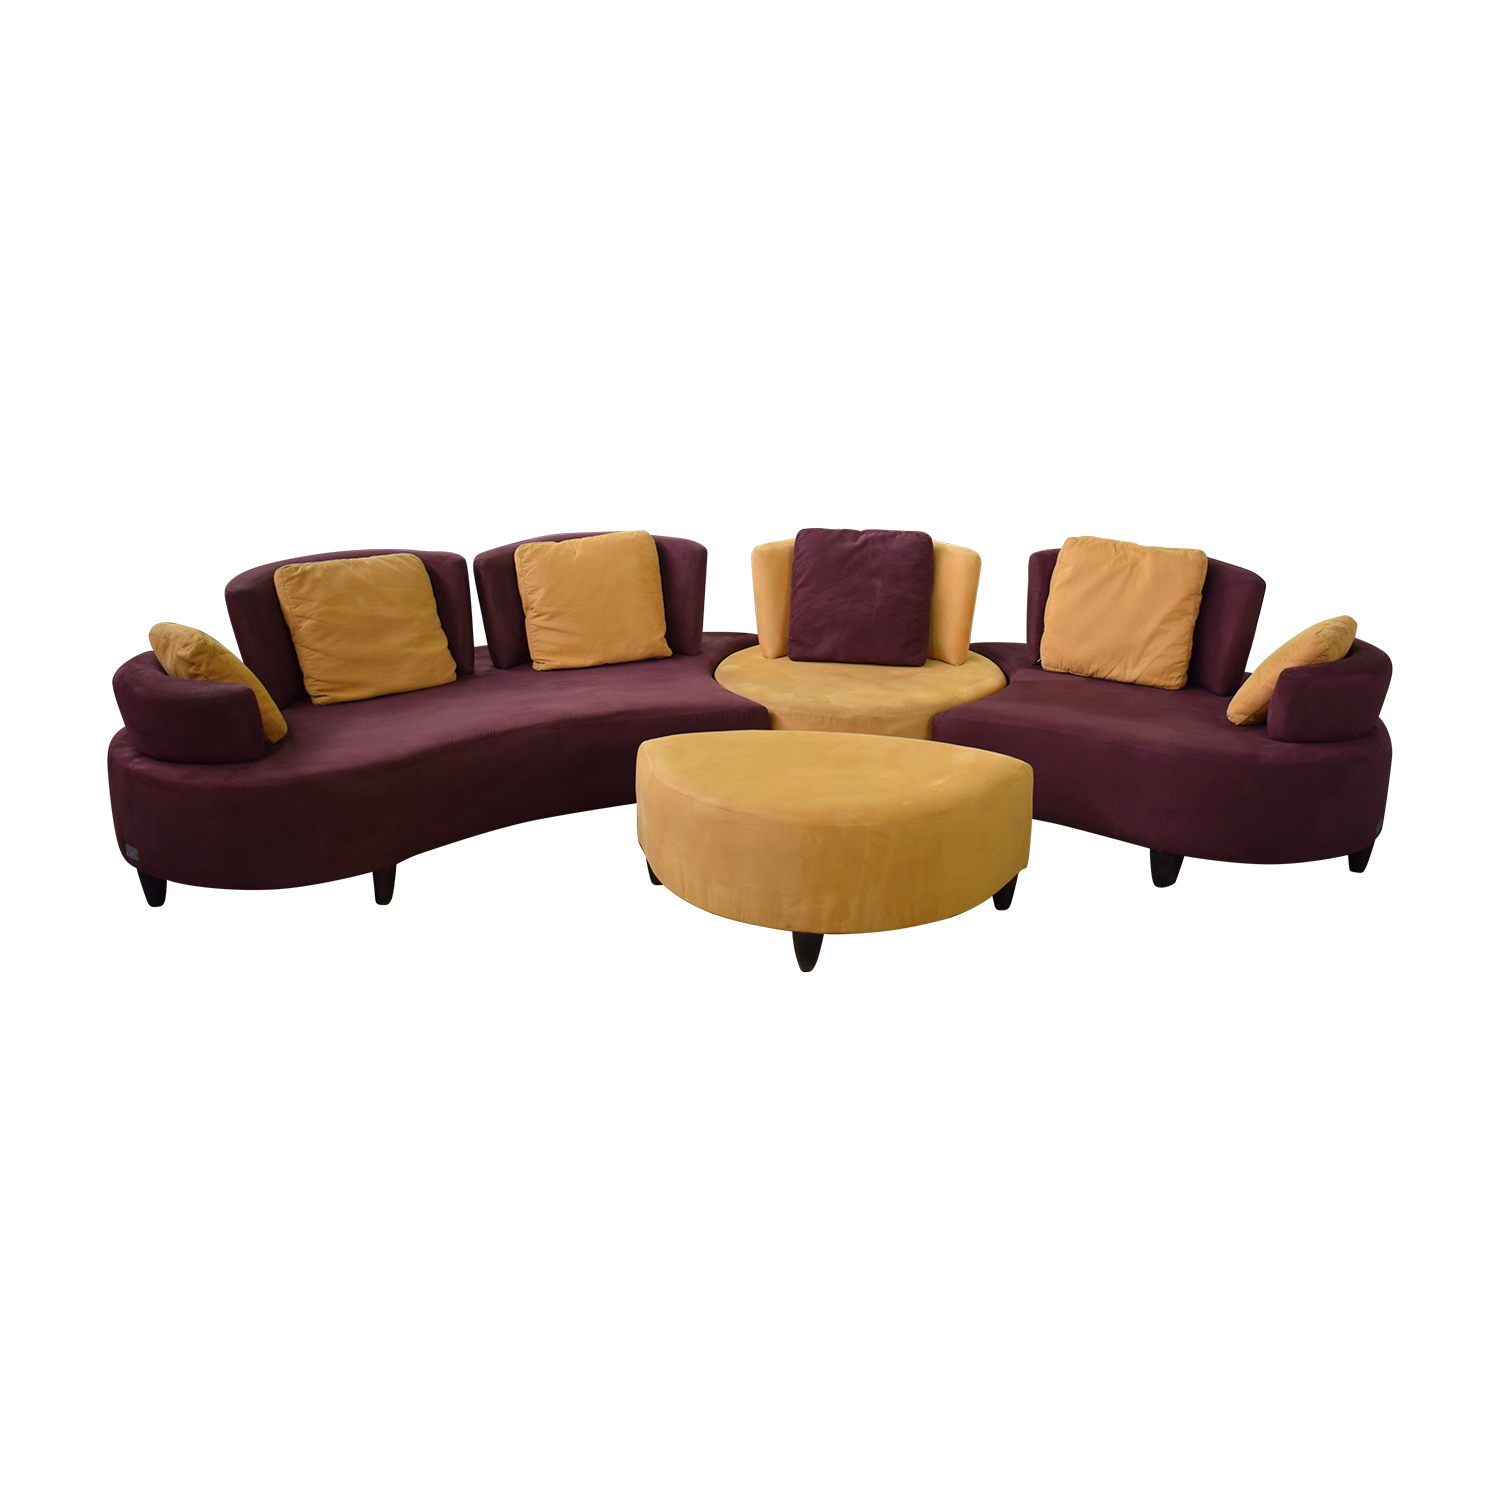 Normand Couture Design Normand Couture Design Cameleon Sectional Sofa used